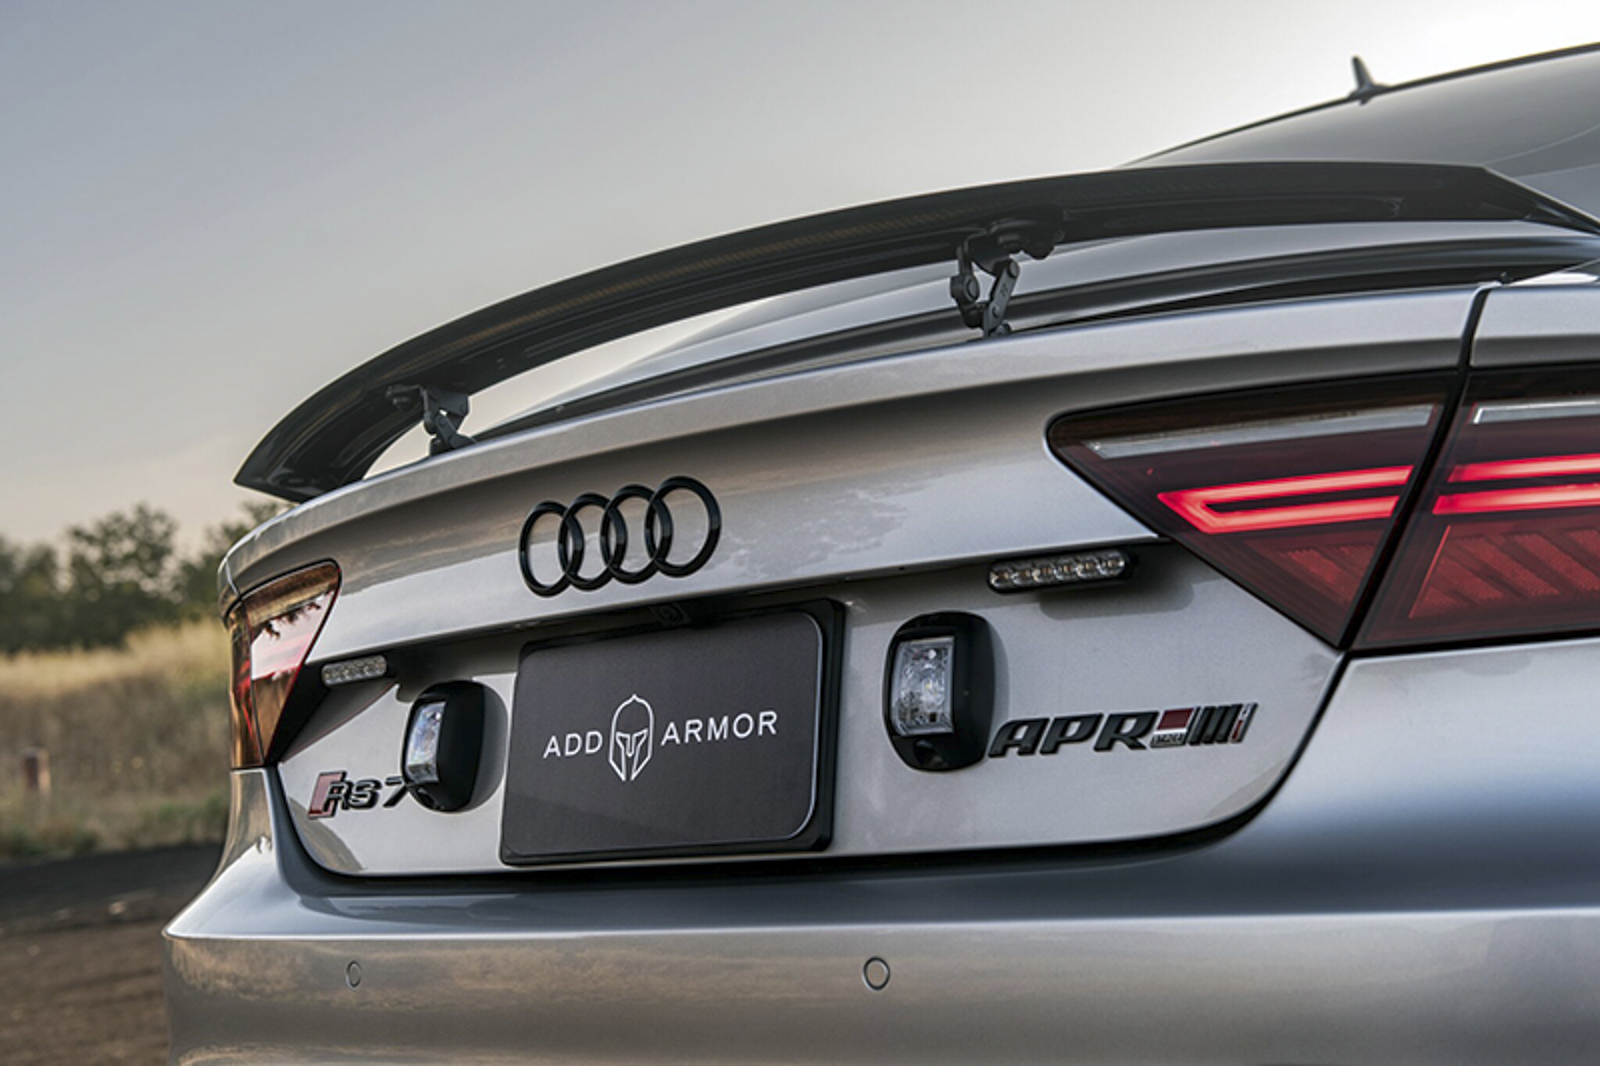 Audi Rs7 0-60 >> 2019 Audi Rs7 By Addarmor Top Speed